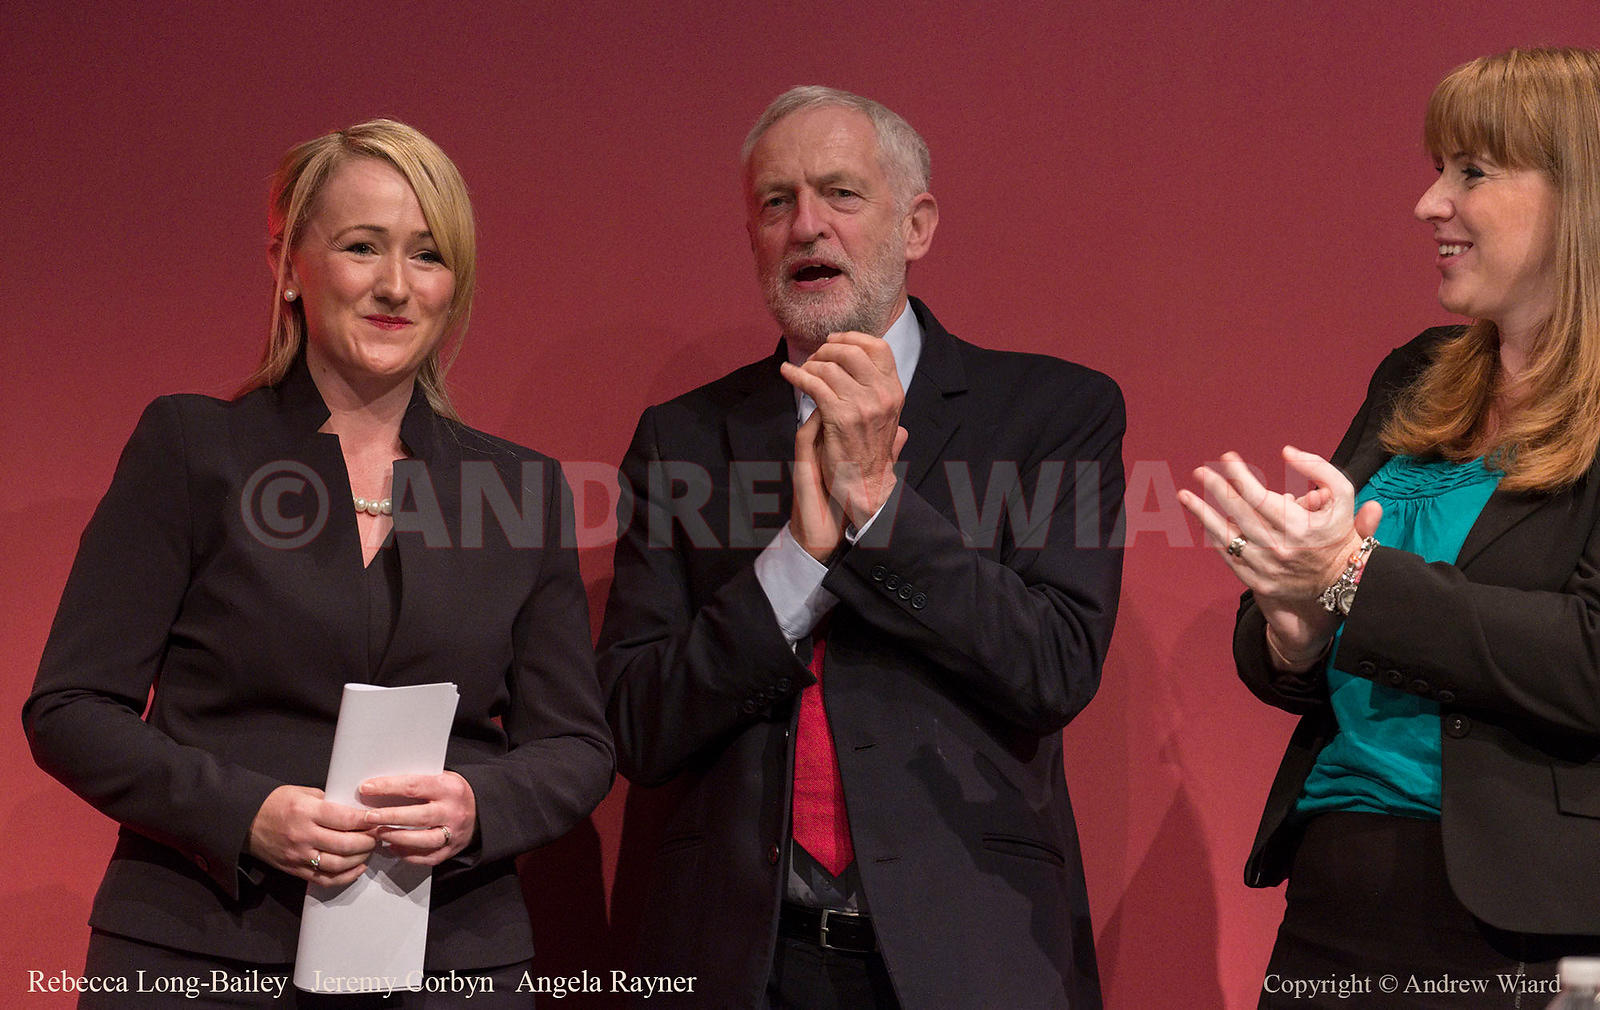 England, UK . 26.9.2017. Brighton. Labour Party Conference Tuesday. Rebecca Long-Bailey - Jeremy Corbyn - Angela Rayner..